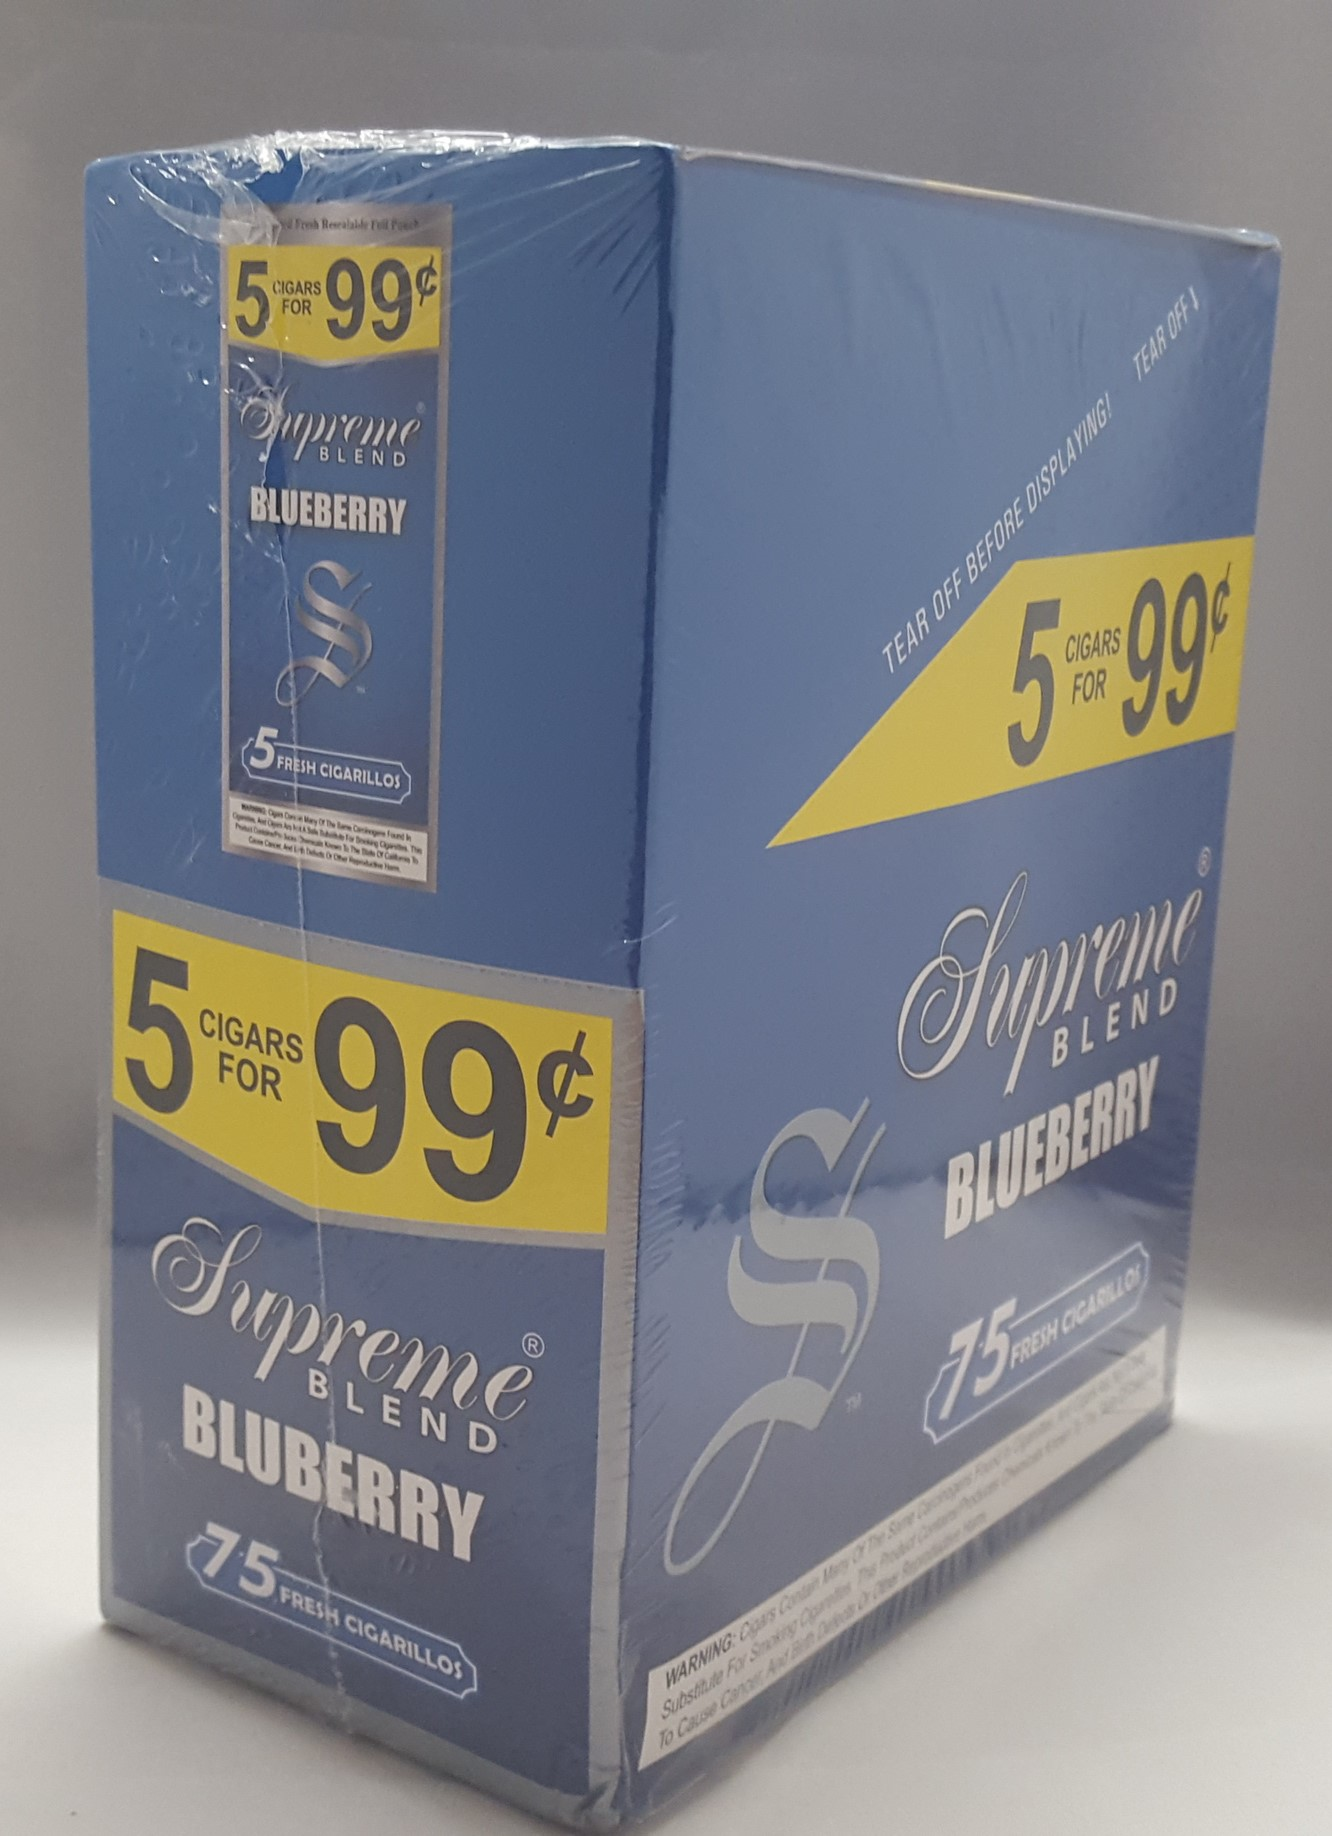 Supreme Blend Blueberry Pre-Priced 5 for .99